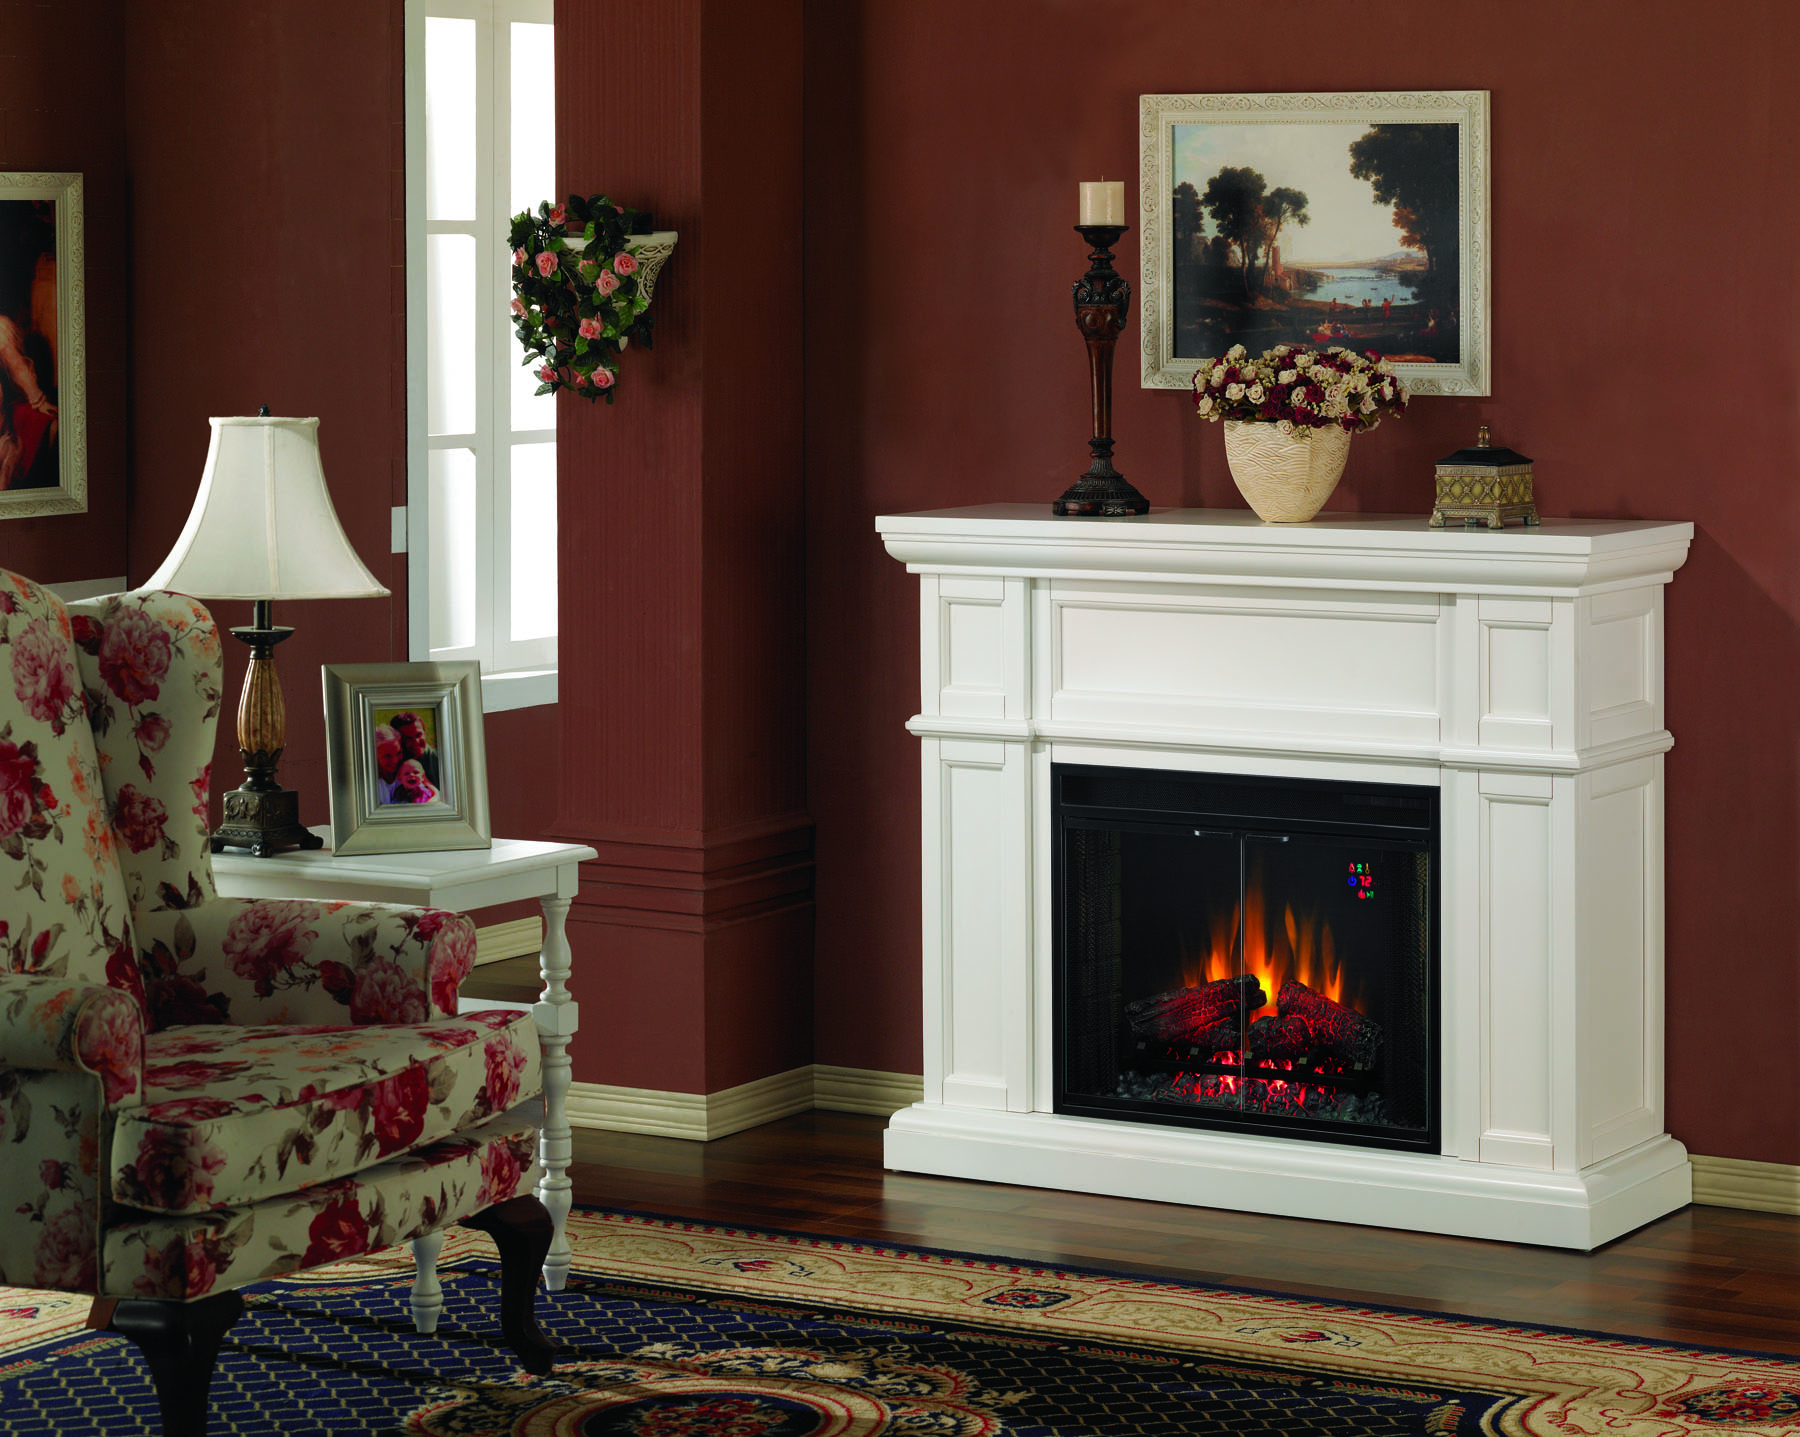 The pros and cons of having an Electric fireplace